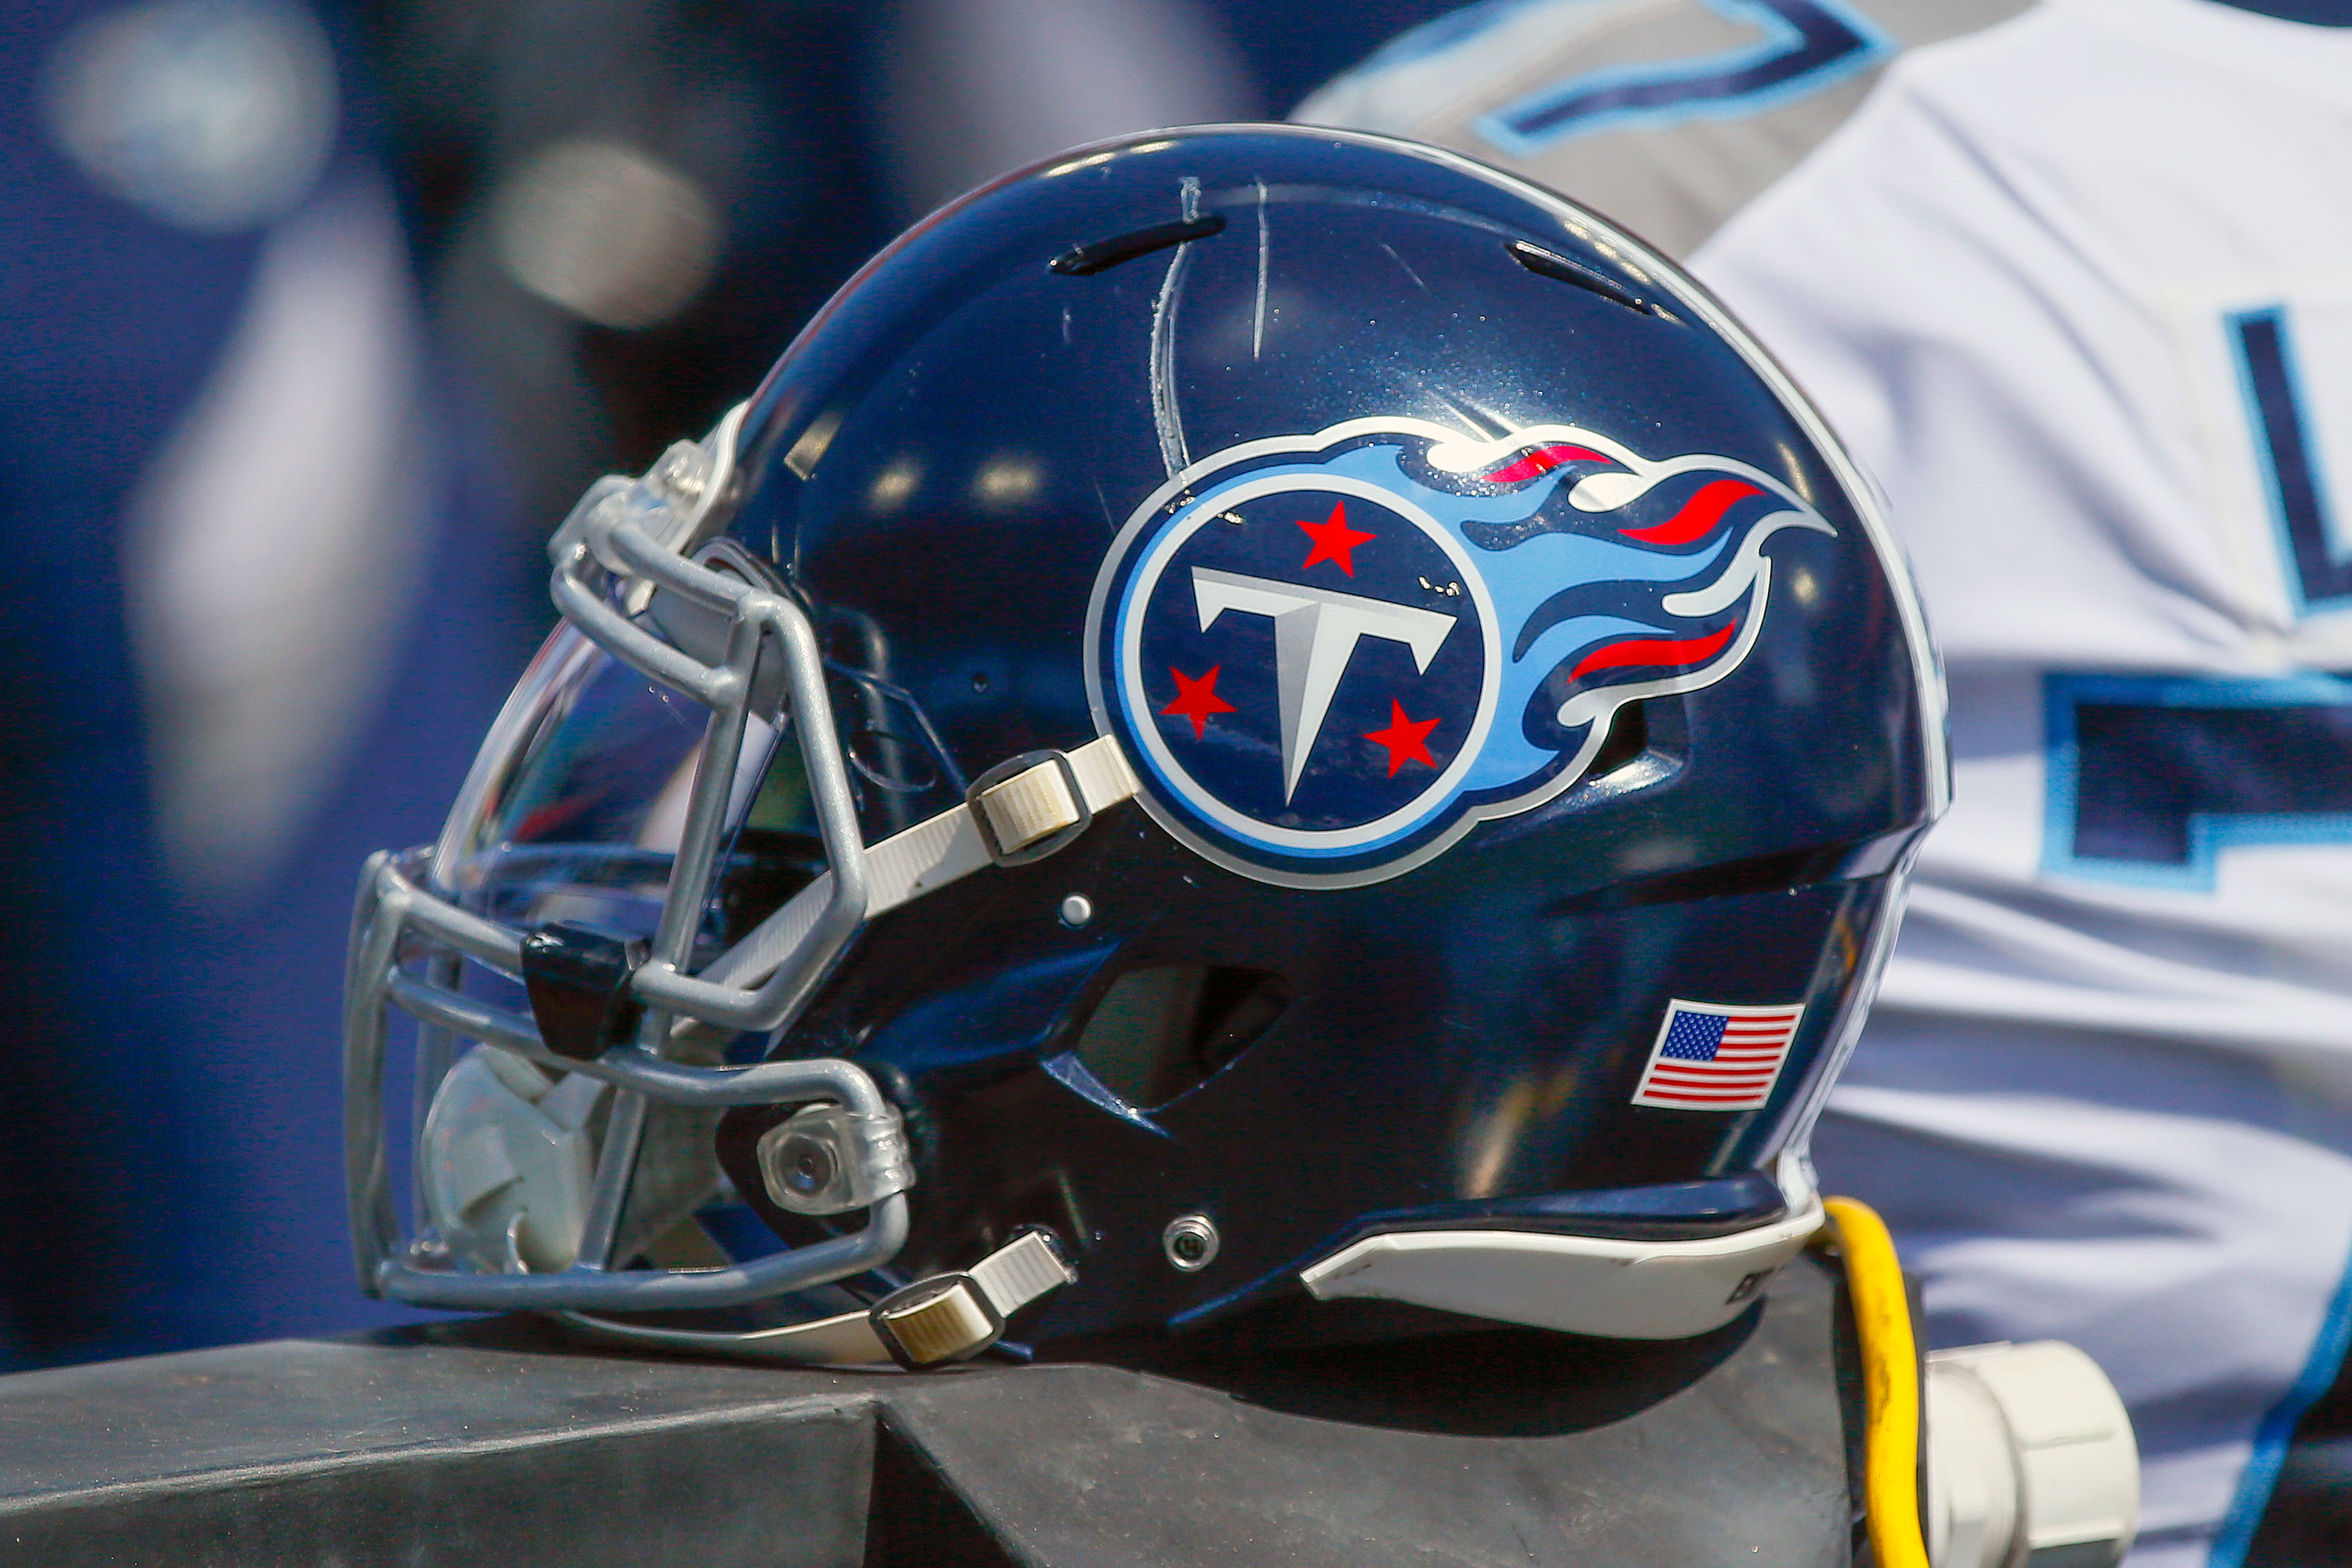 A Tennessee Titans helmet is on the sideline during a game in Nashville on September 20.